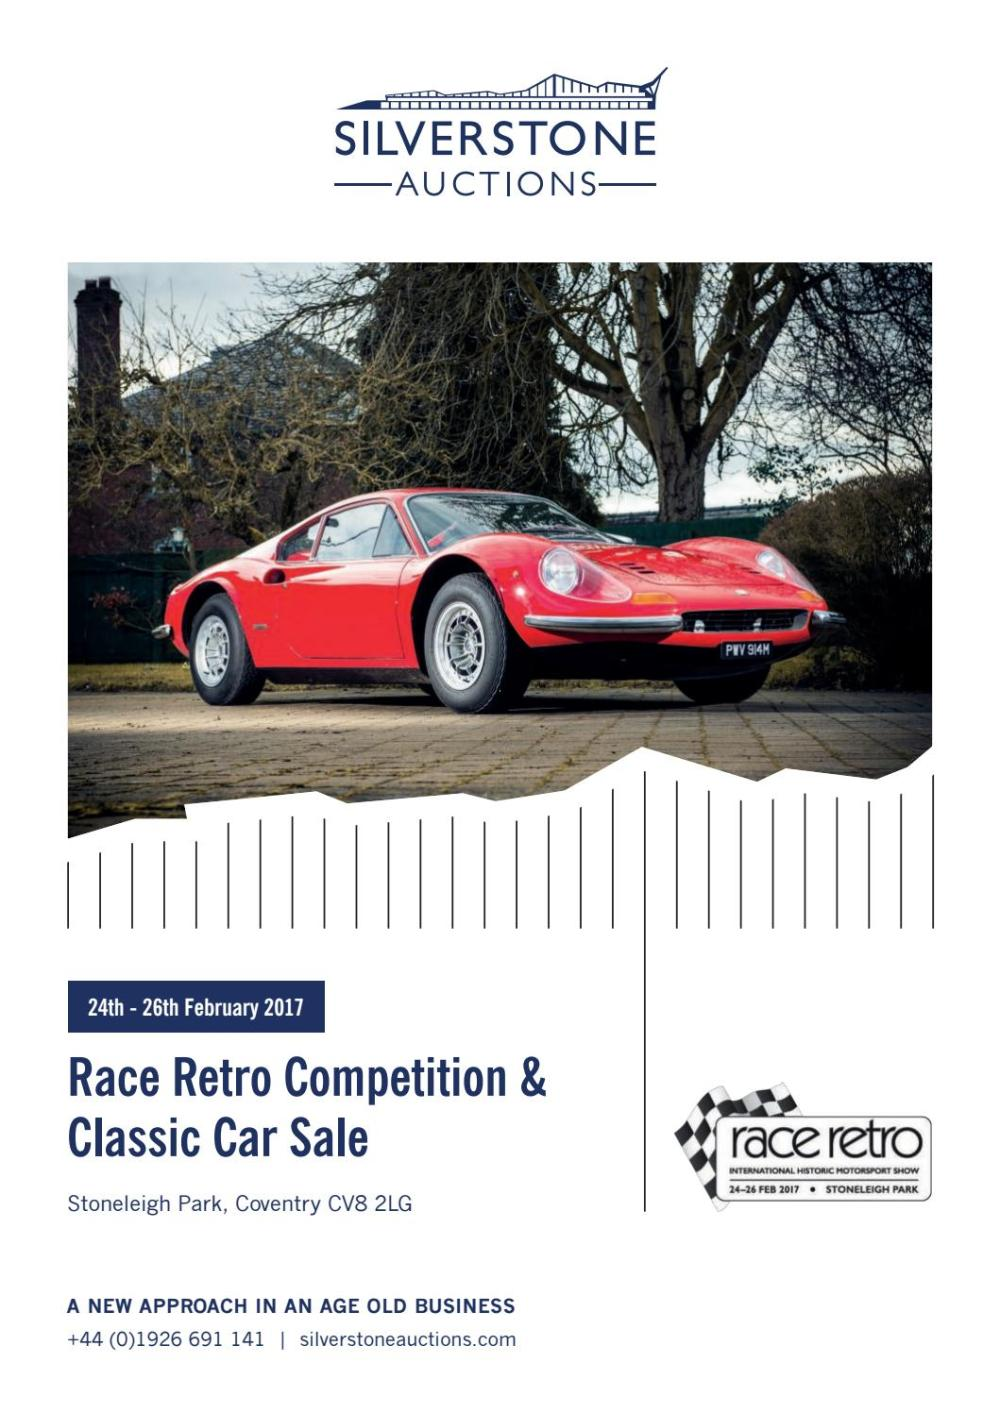 medium resolution of race retro competition classic car sale 24th 26th february by wiring diagram 1955 aston martin db3s ft boxcar free download wiring